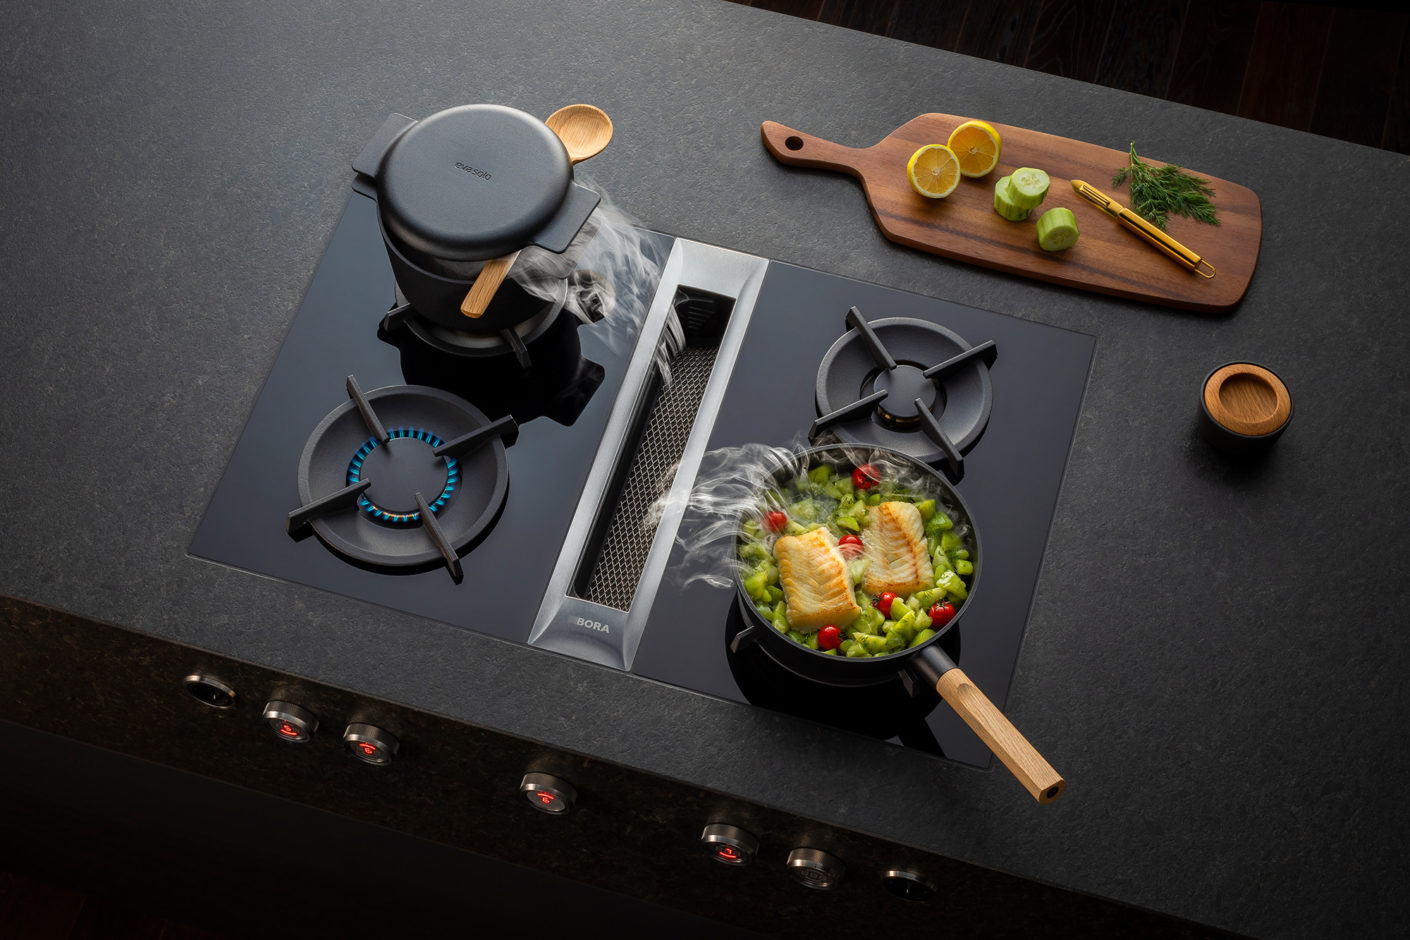 Bora cooktop extractor from above